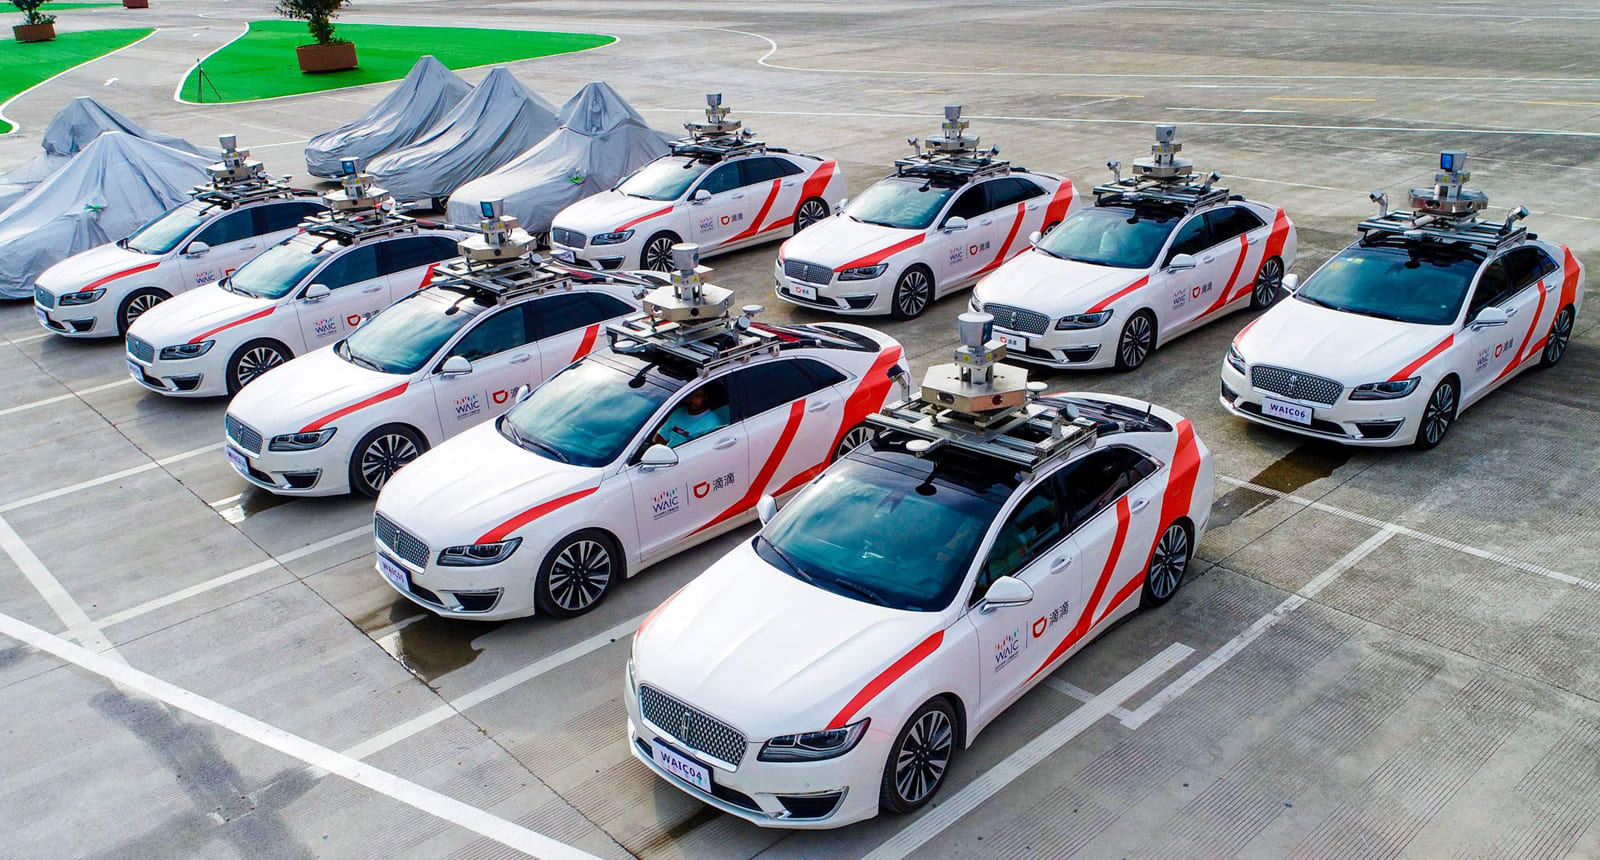 Ridesharing giant Didi Chuxing will offer robotaxi service in Shanghai